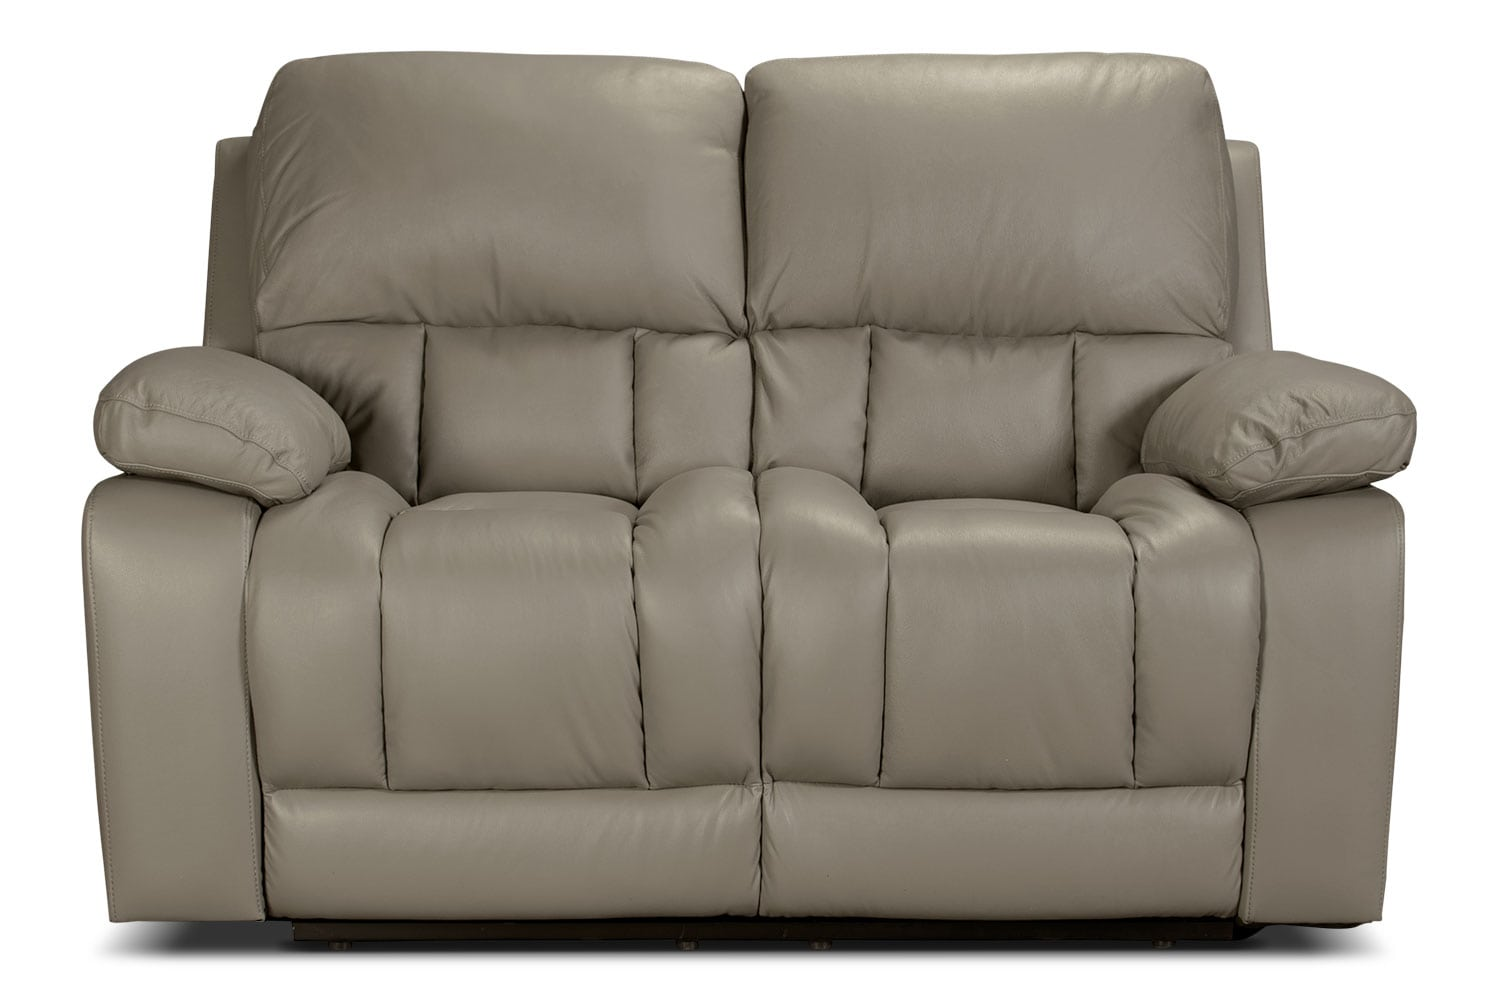 Keaton Reclining Loveseat - Grey